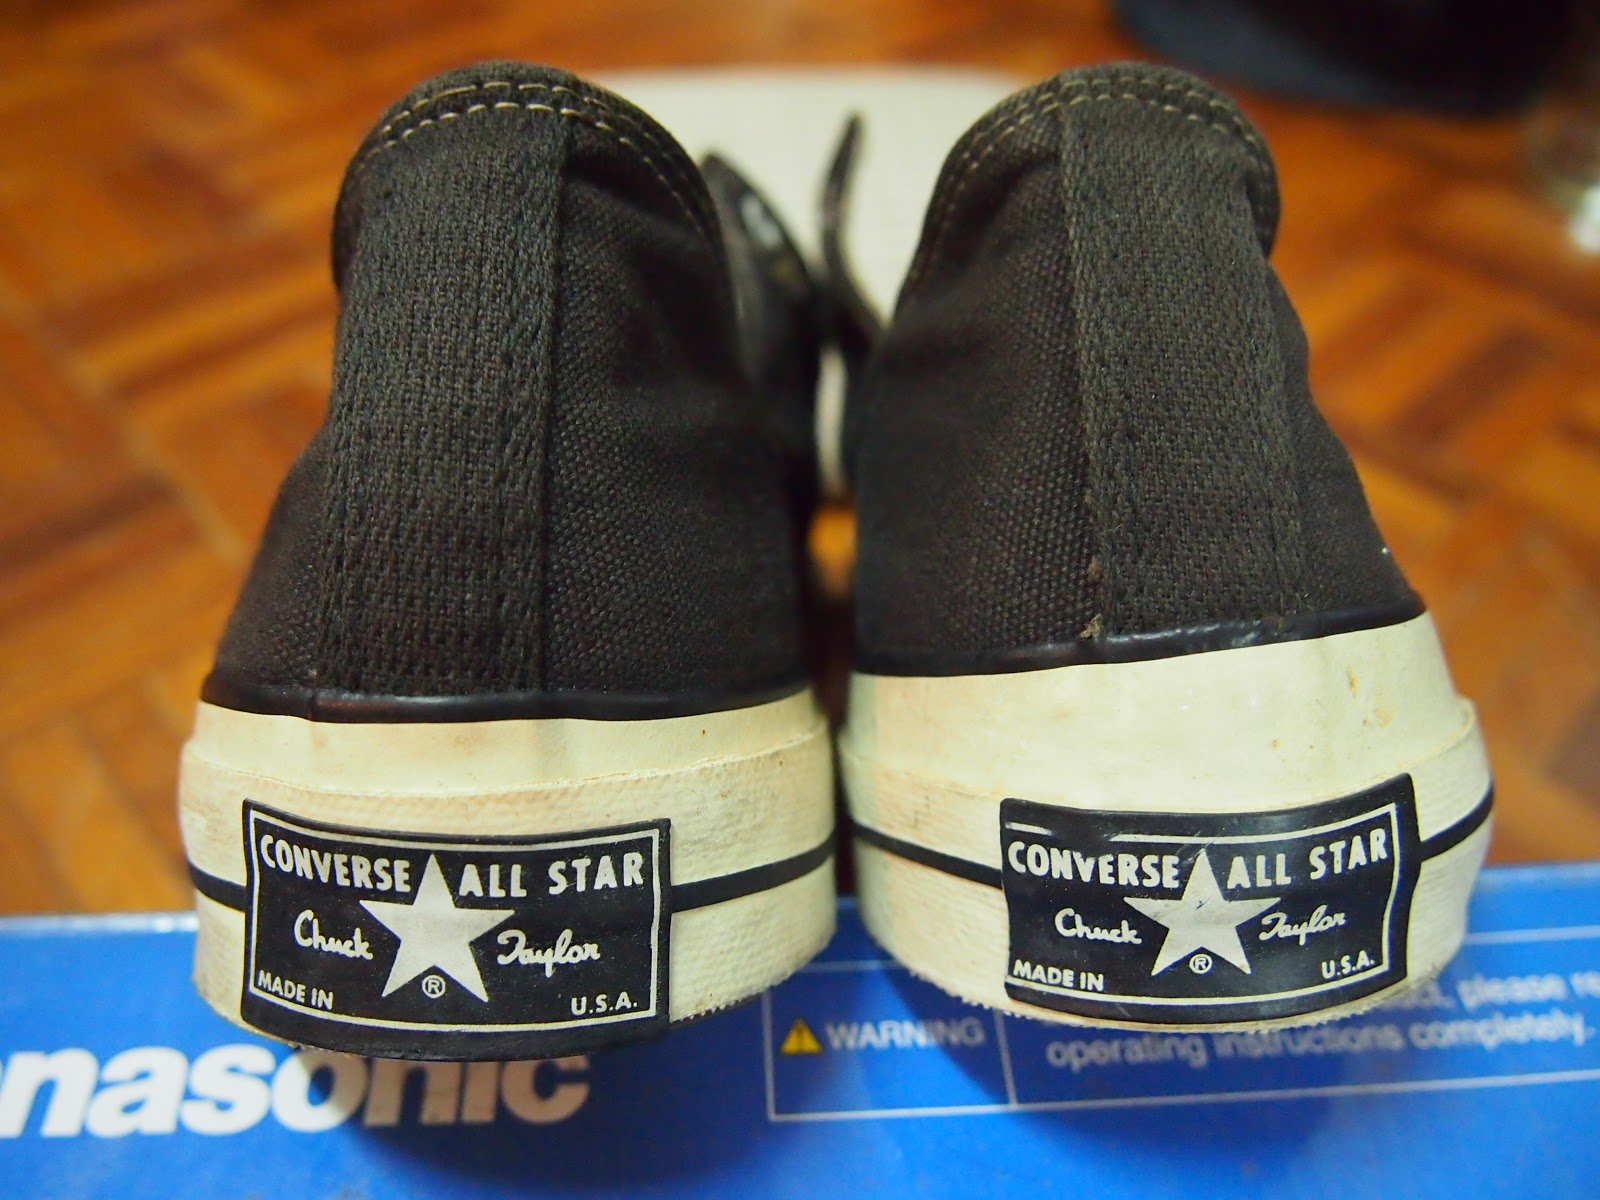 85209d1a8796 Converse made in the usa dating - Usa dating com